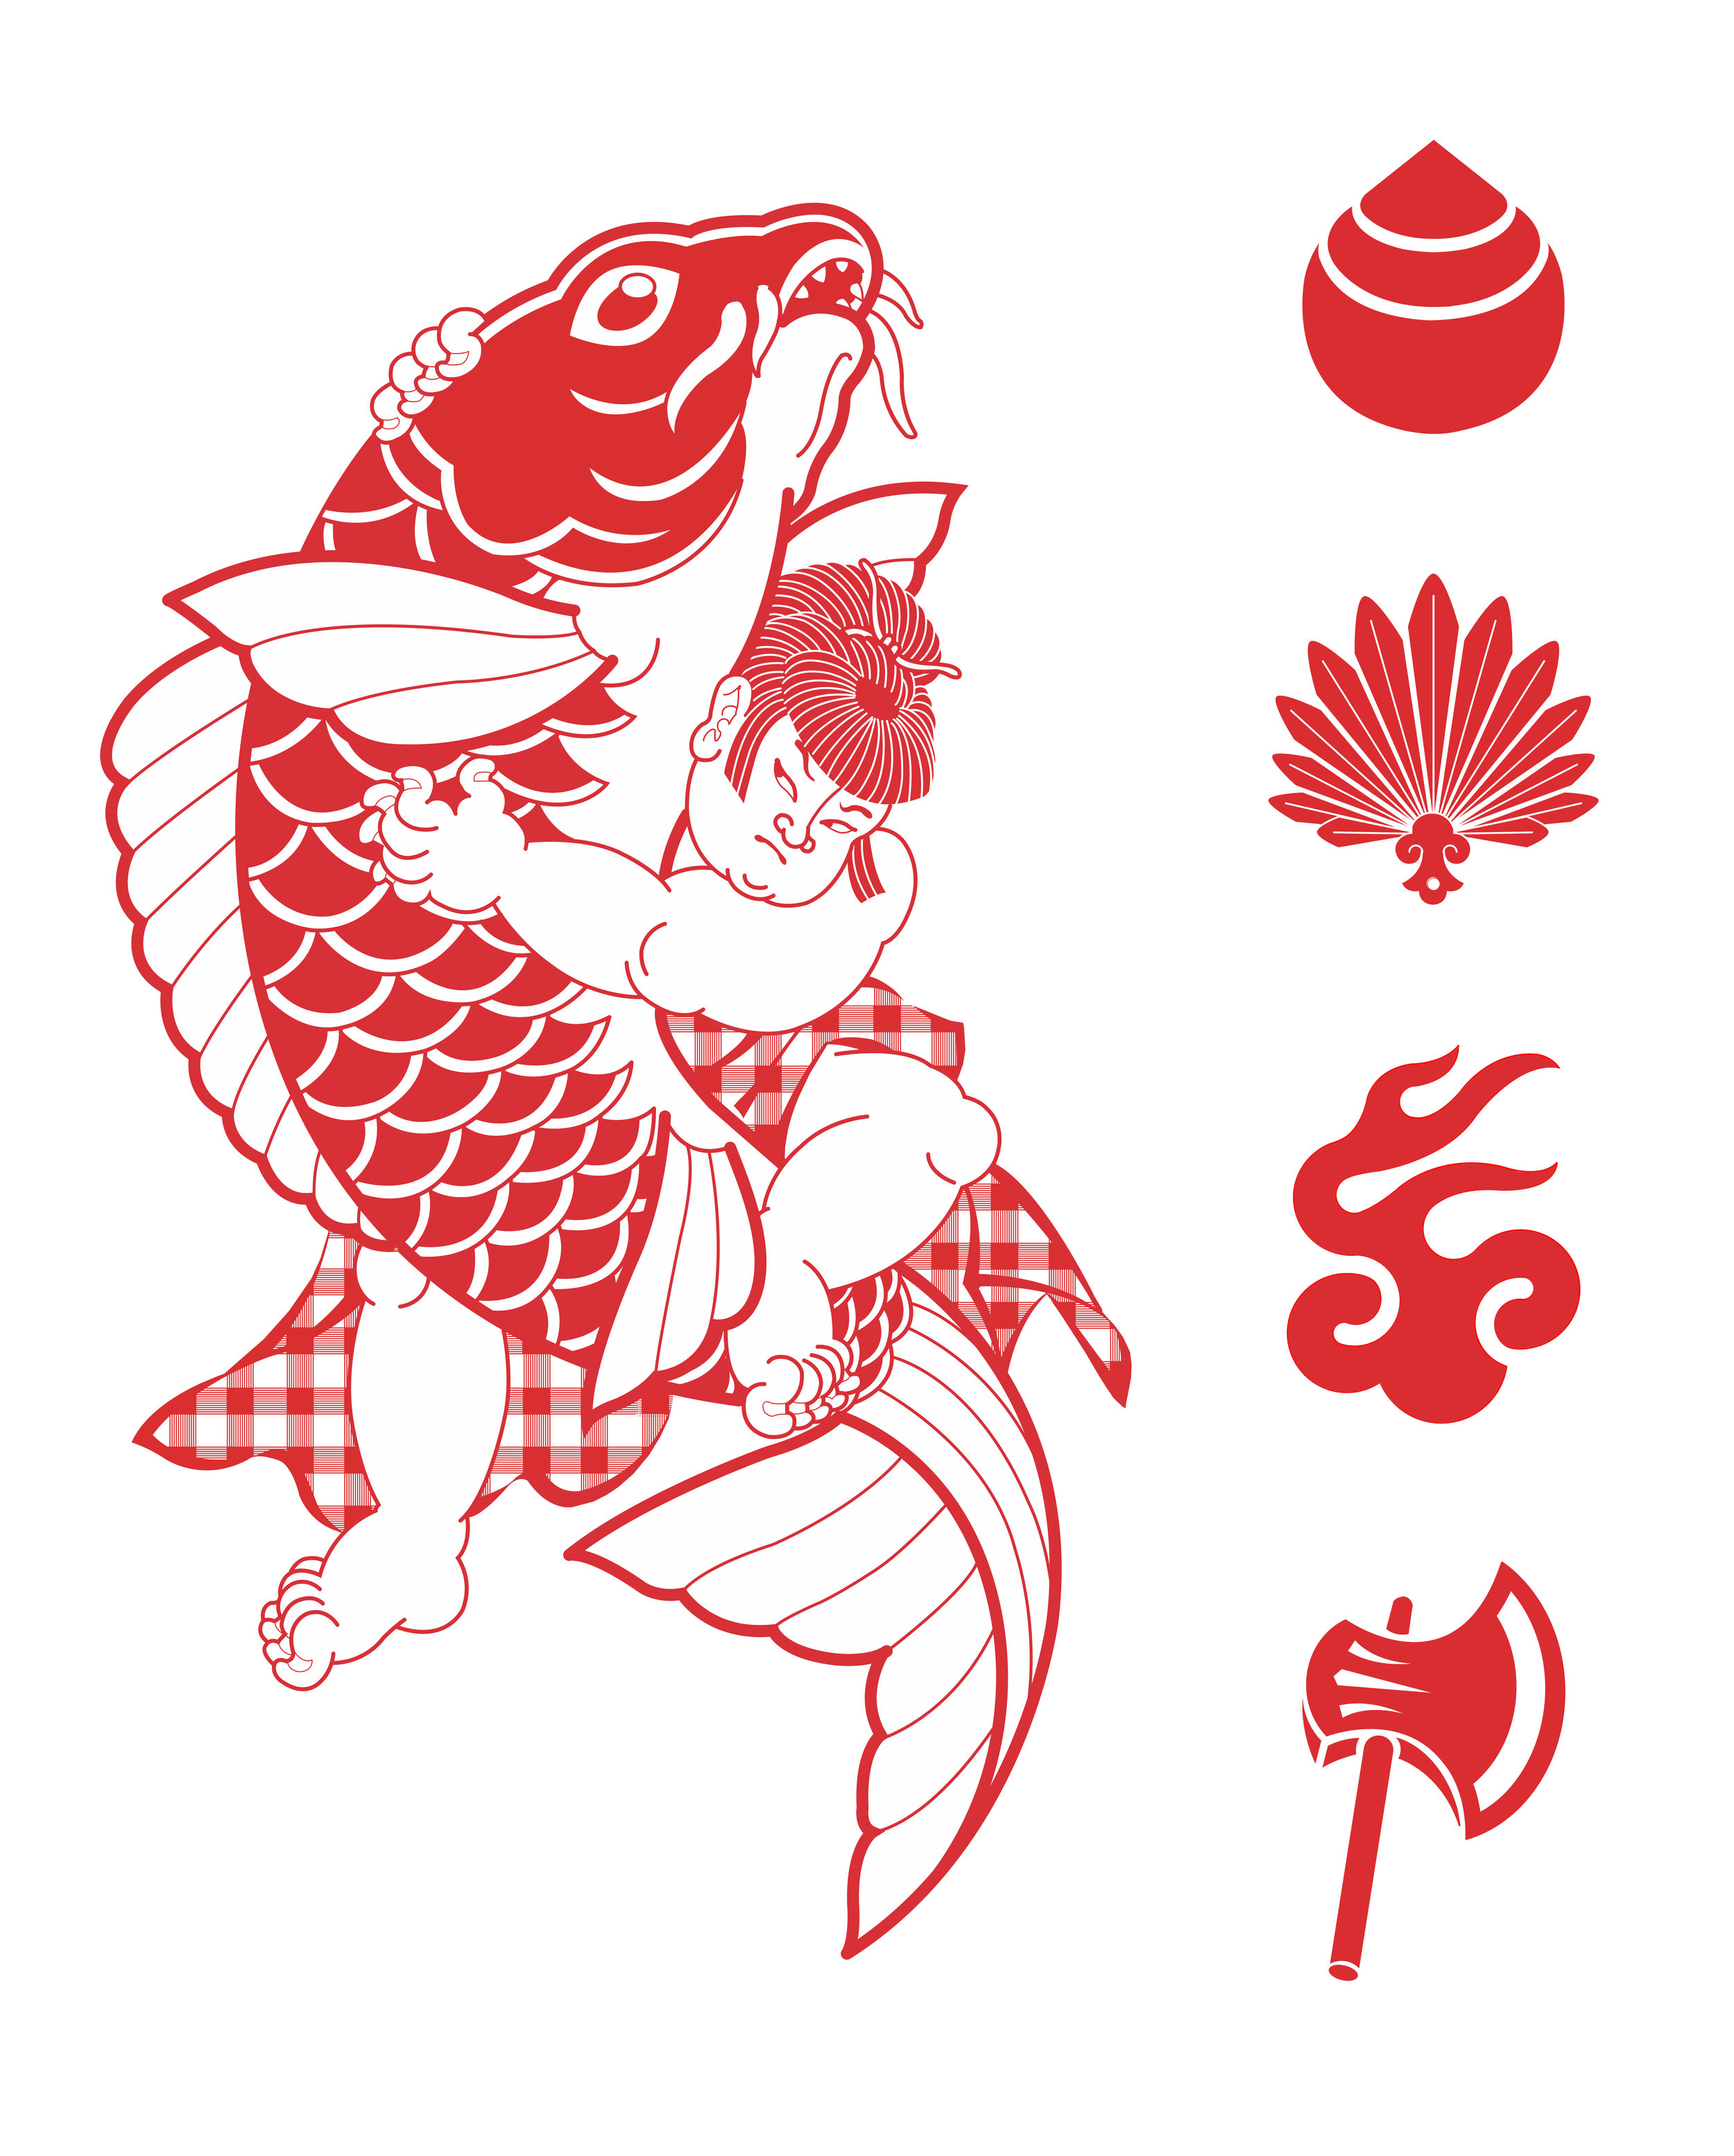 """Kintaro with Koi""  — Collaboration by Tyson Ward & Steph Laba"